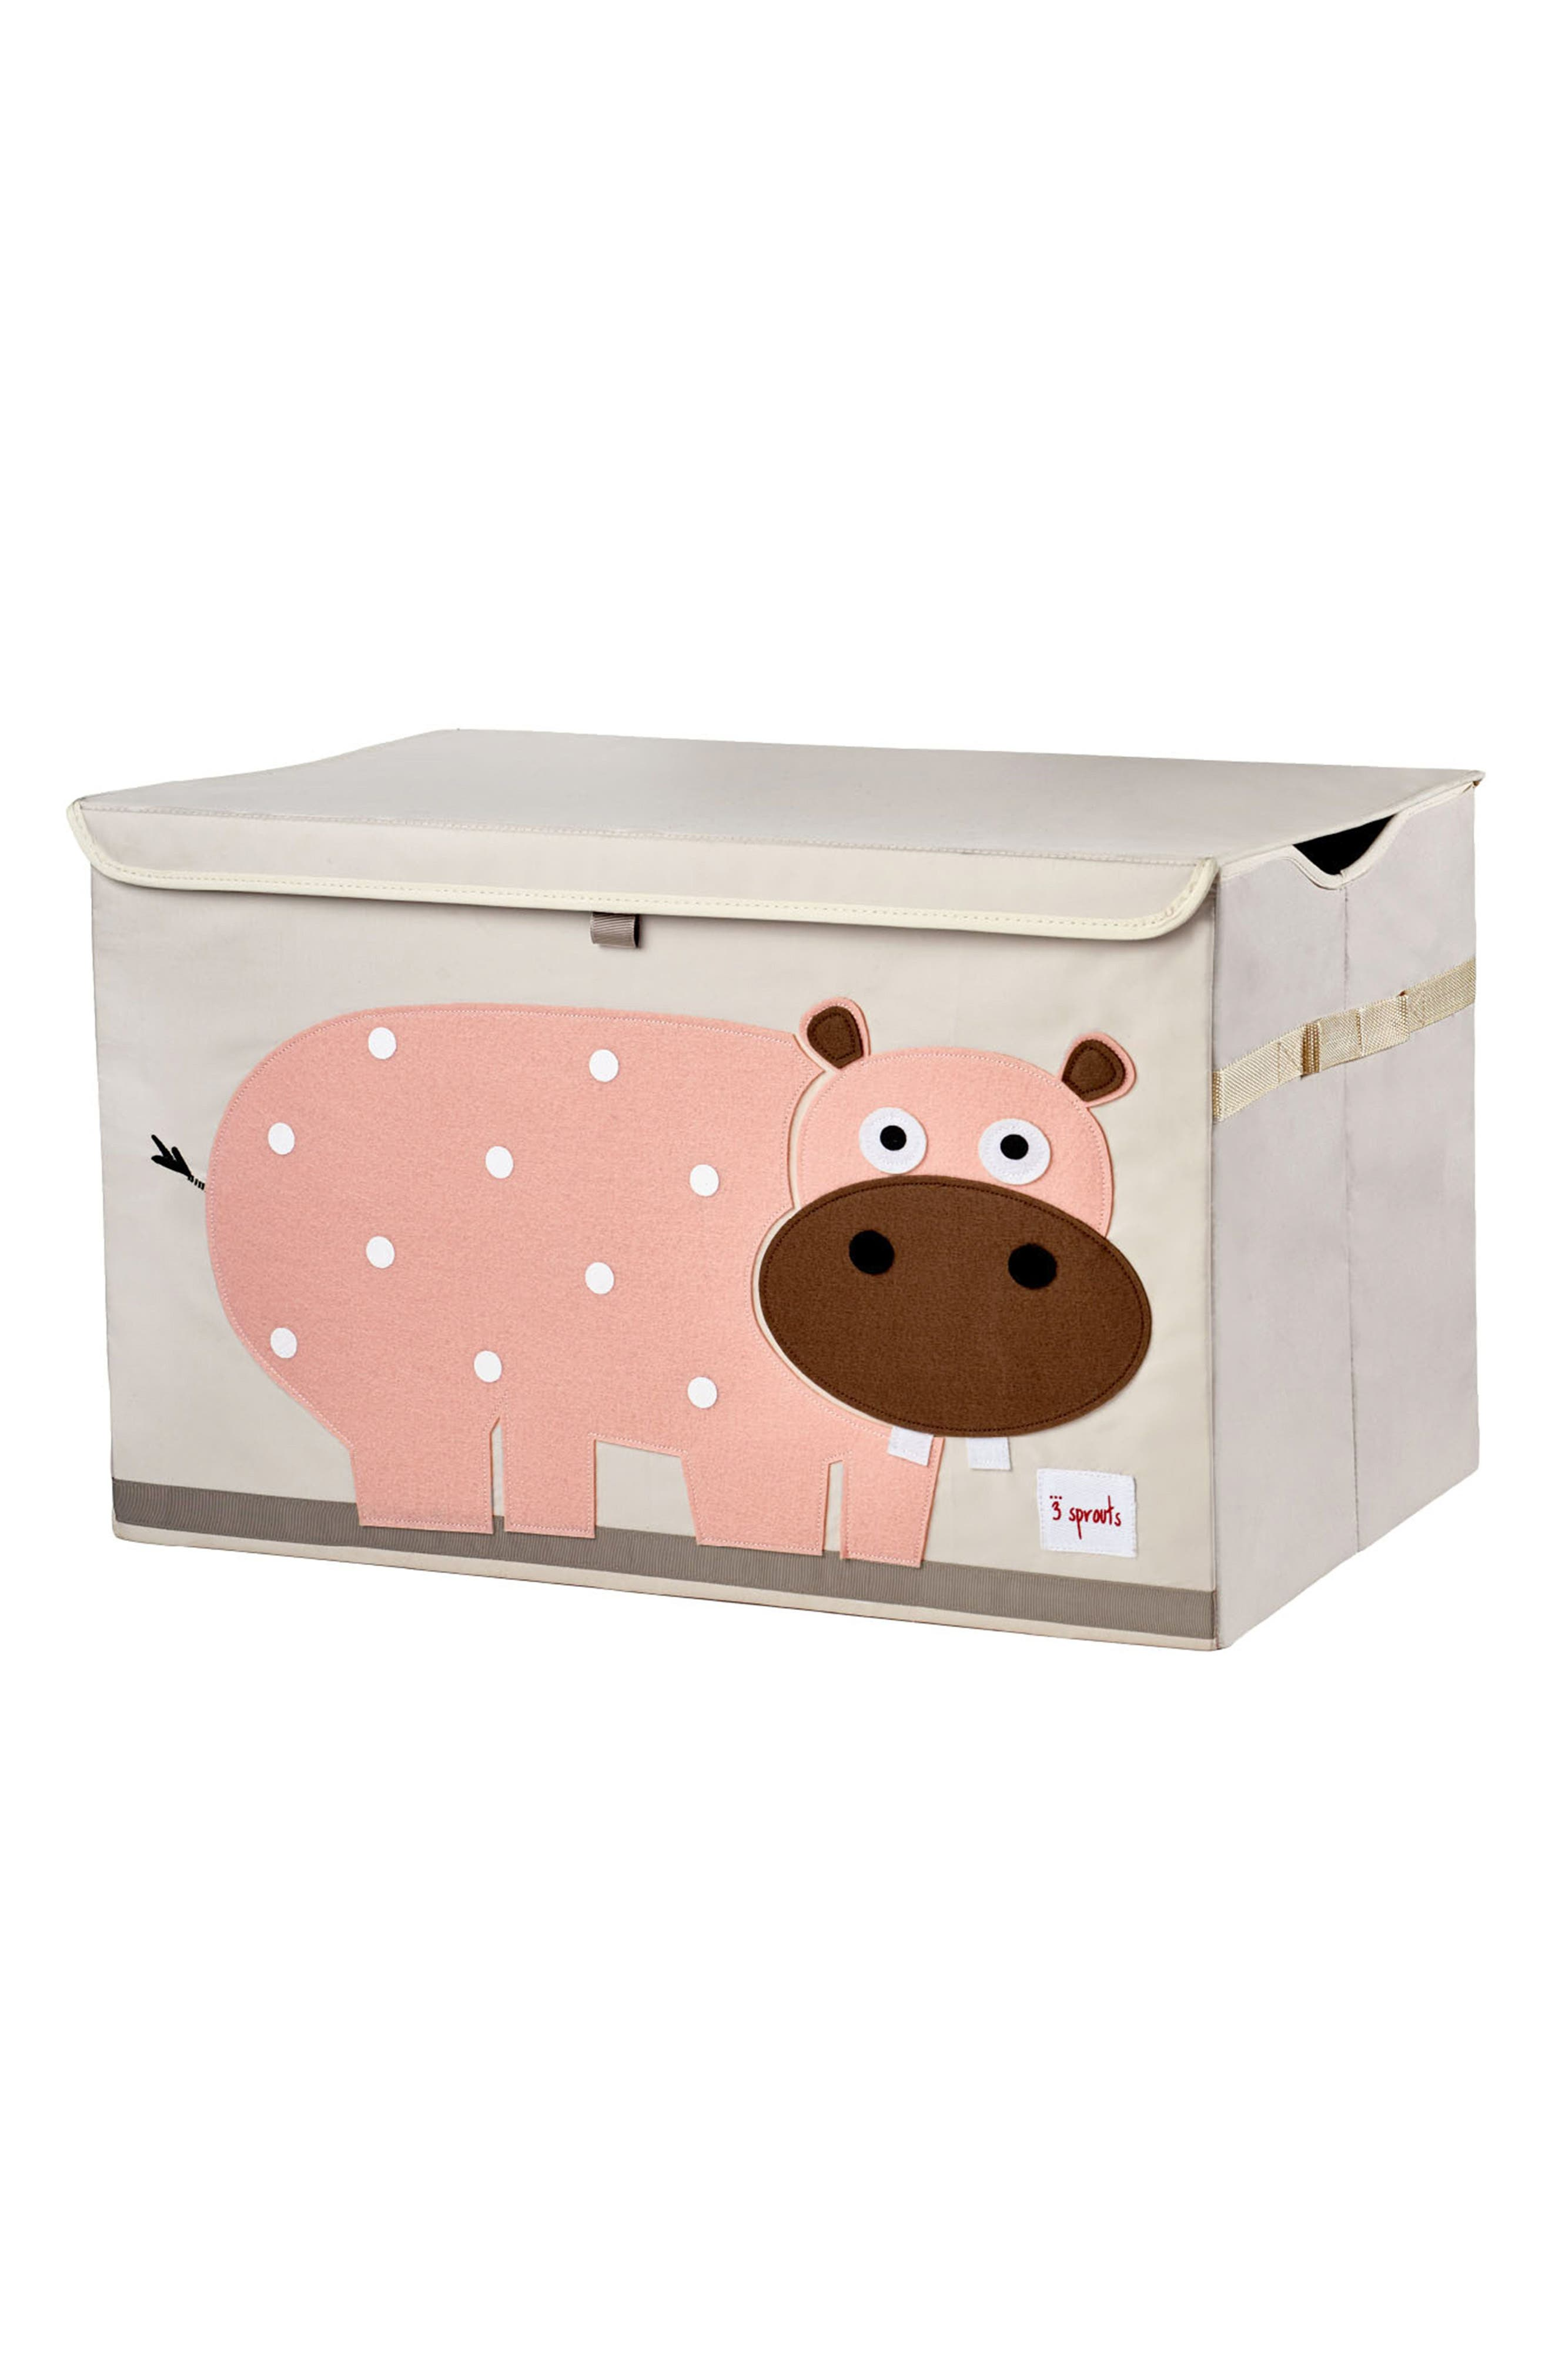 Hippo Toy Chest,                             Main thumbnail 1, color,                             650